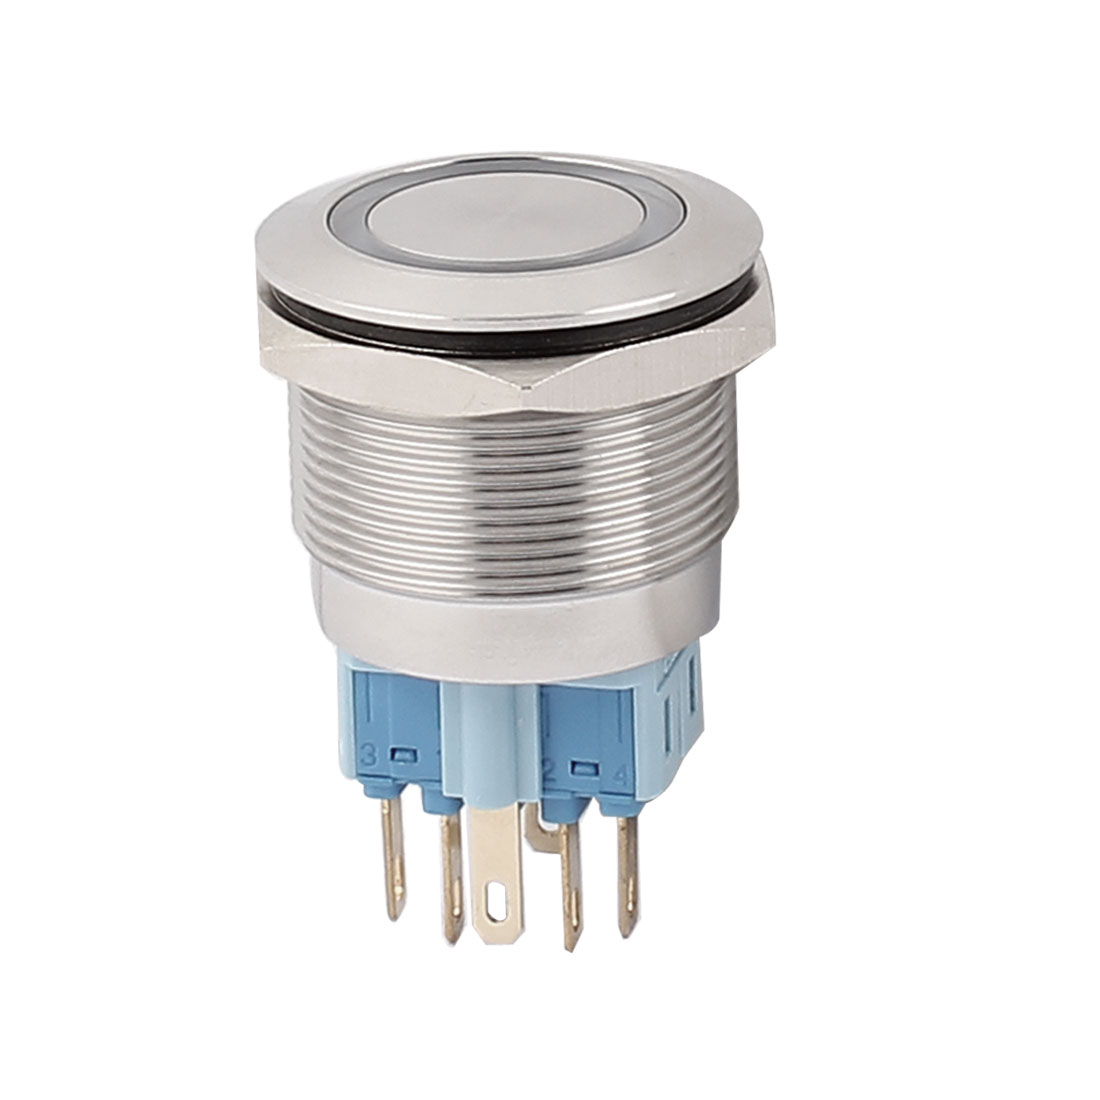 12V 25mm Dia Thread Blue LED Angle Eyes Latching Metal Pushbutton Switch